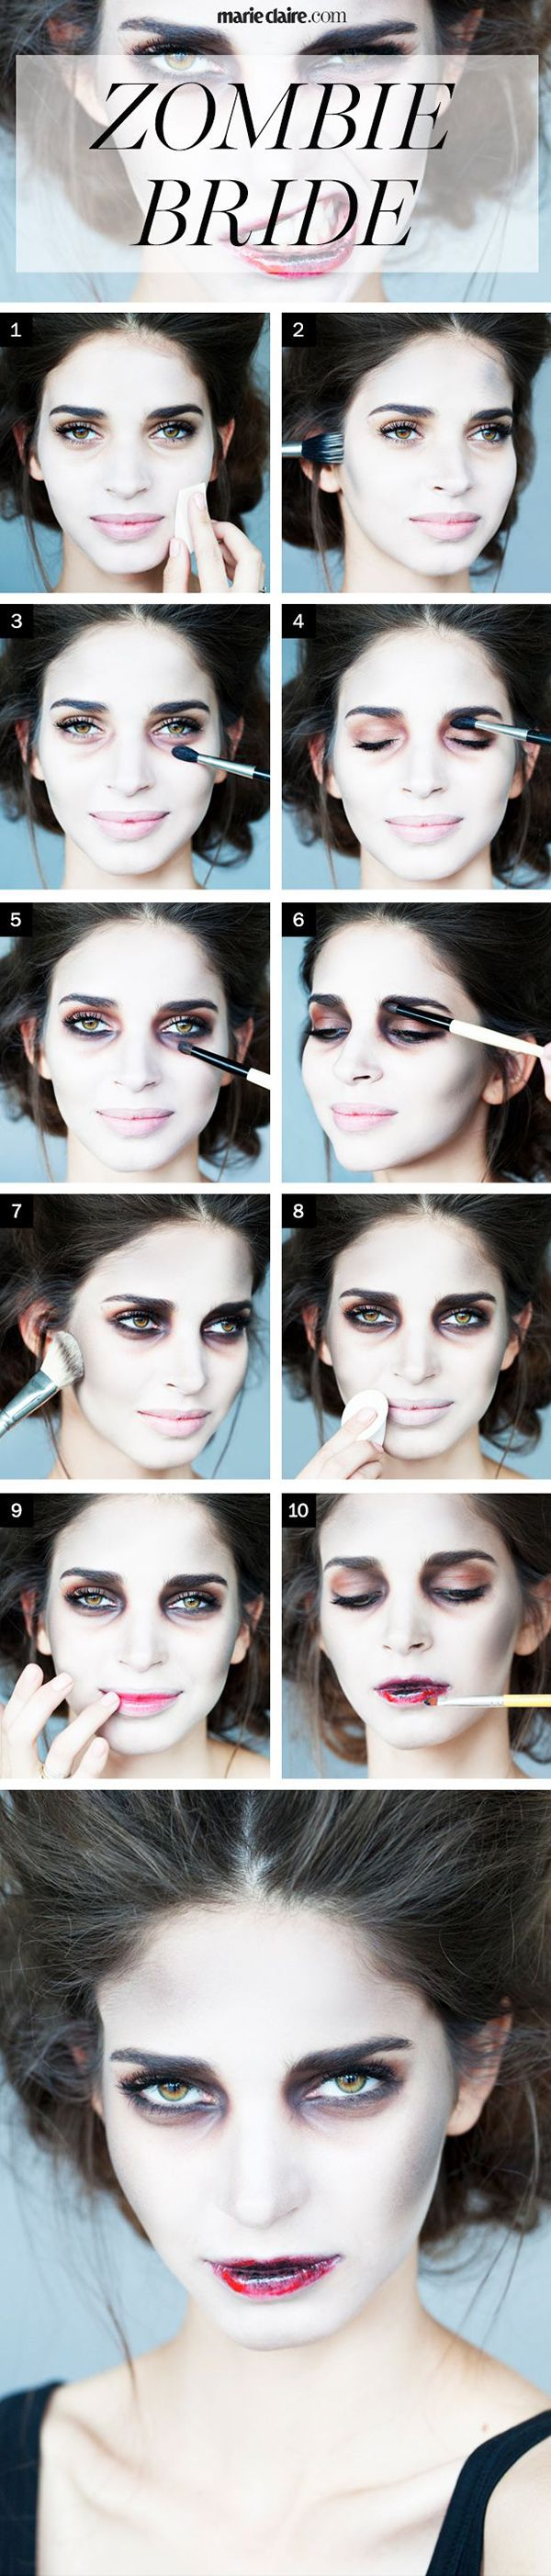 Awesome Halloween Zombie makeup tutorial. Pinning so I can try it out soon!